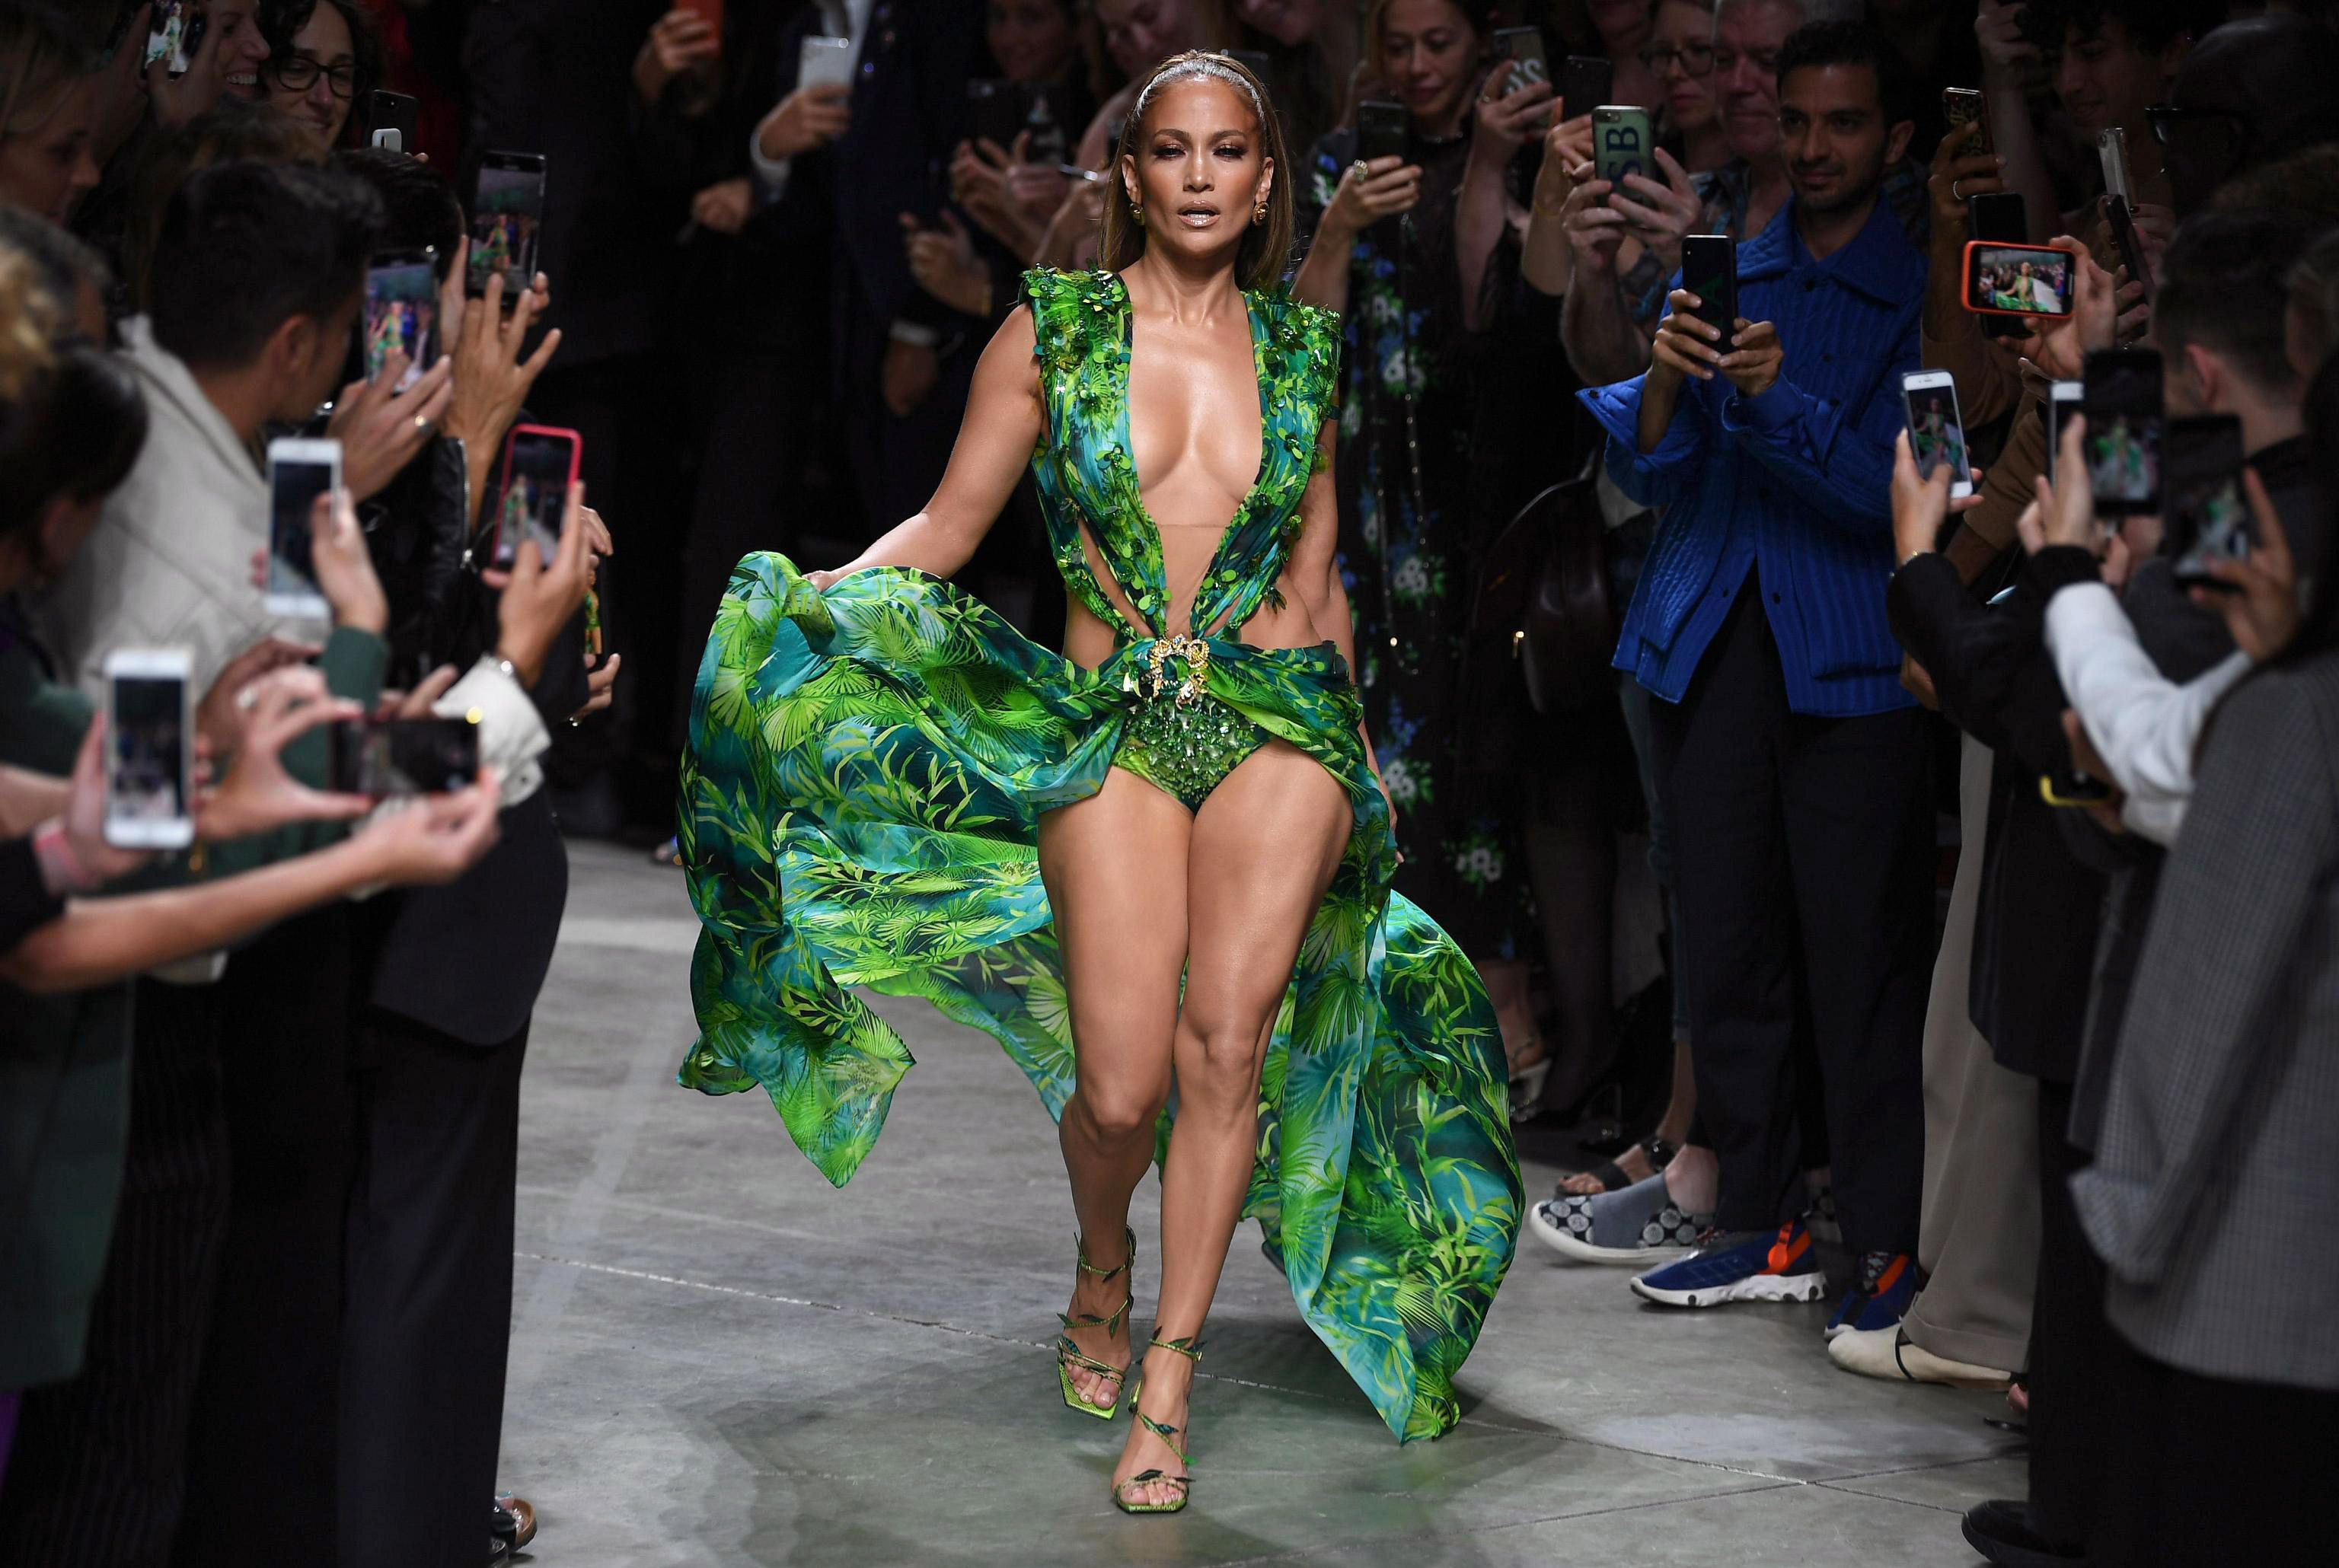 US actress Jennifer Lopez presents a creation by Versace during the Milan Fashion Week, in Milan, Italy, 20 September 2019. Spring-Summer 2020 women's collections are presented at the Milano Moda Donna from 17 to 23 September.Versace - Runway - Milan Fashion Week S/S 2020, Italy - 20 Sep 2019